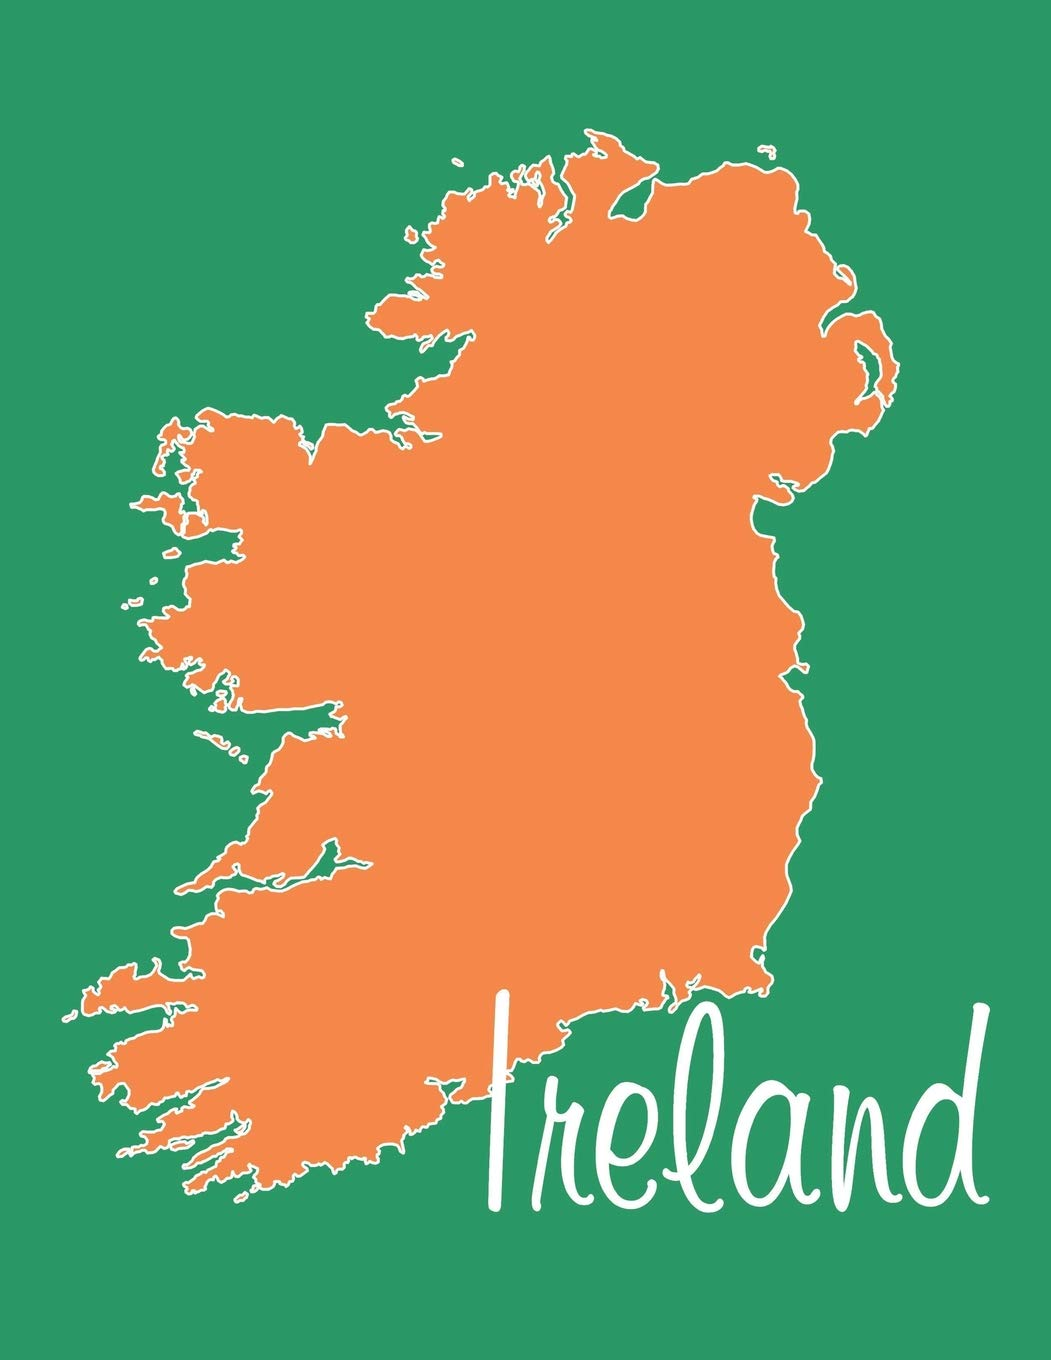 Download Ireland - National Colors 101 - Lined Notebook with Margins - 8.5X11: 101 Pages, 8.5 x 11, Medium Ruled, Journal, Soft Cover PDF